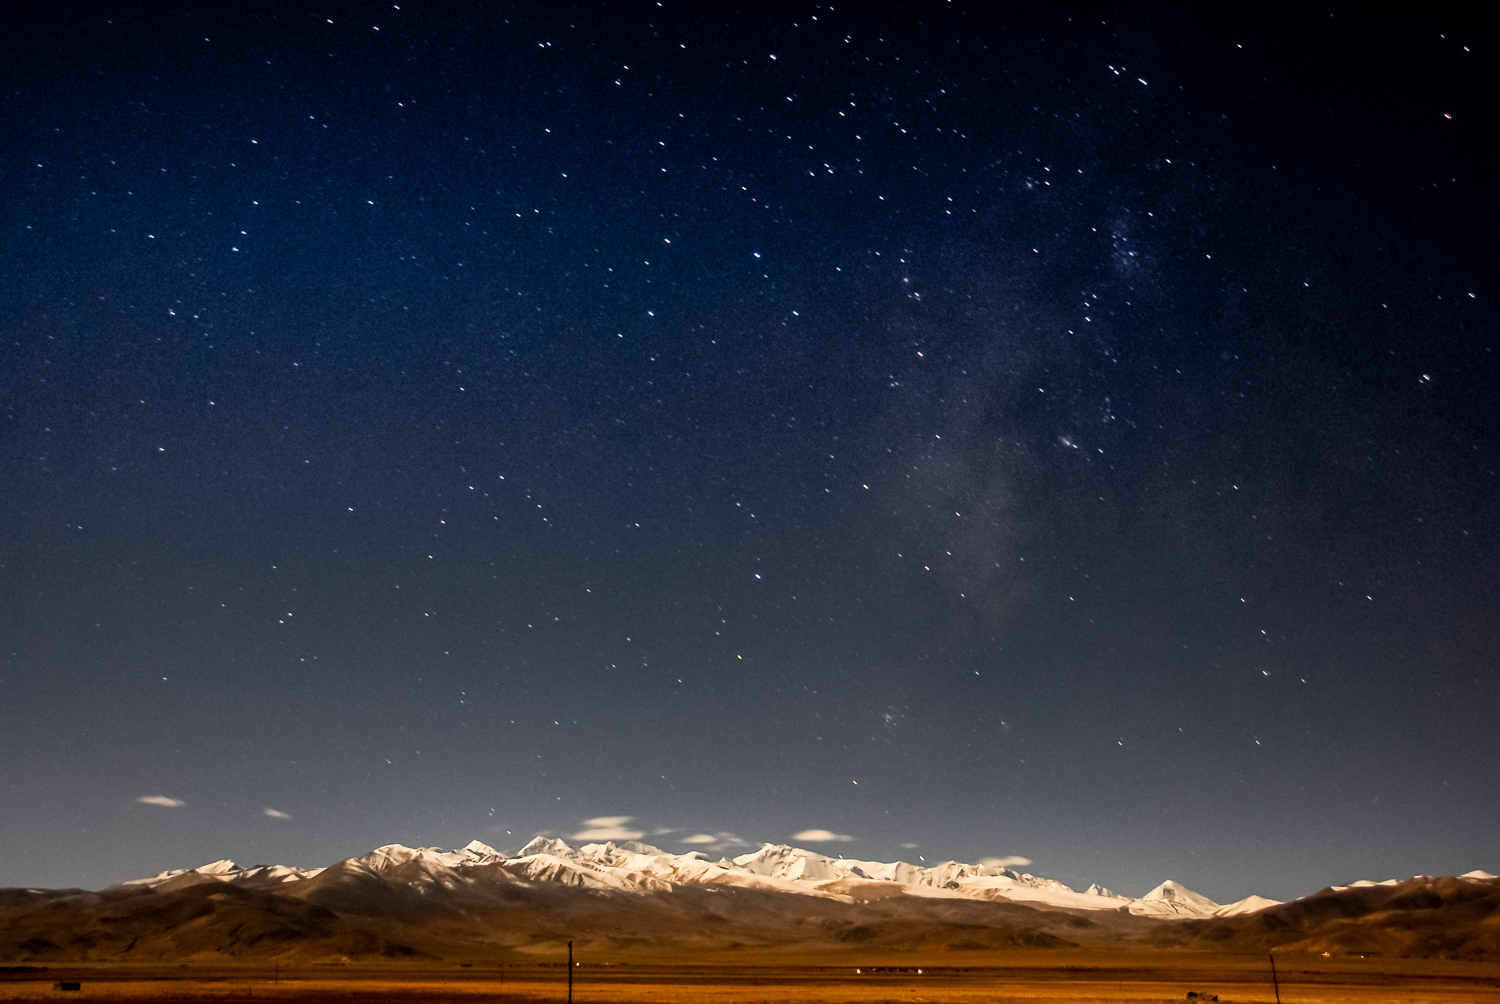 The Himalayas at night, as seen from the Tibetan Plateau.